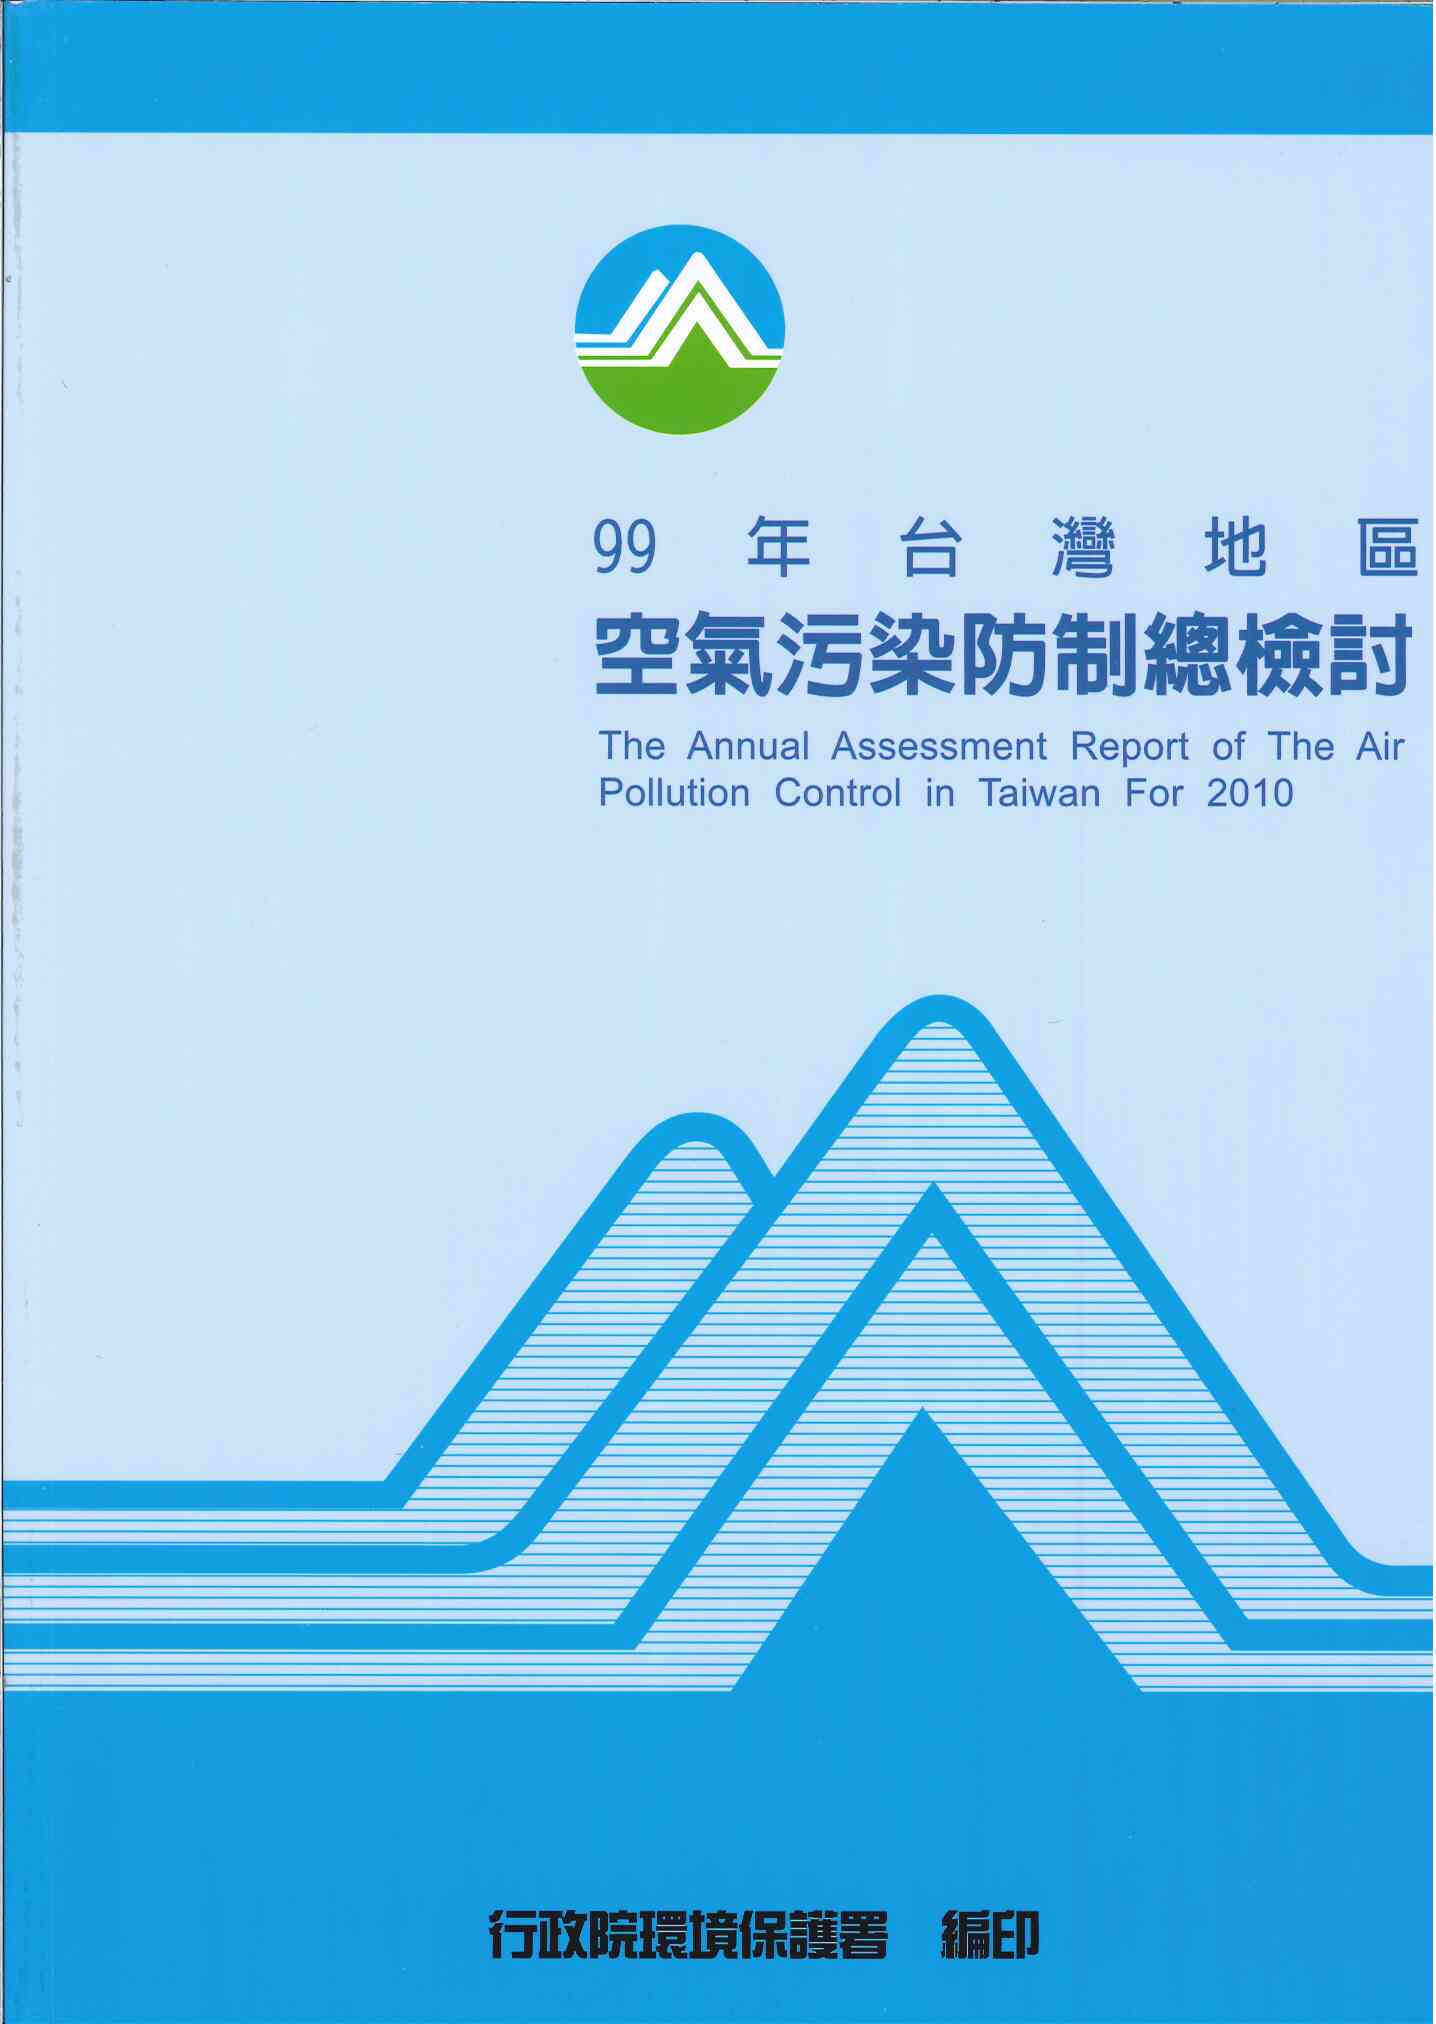 臺灣地區空氣污染防制總檢討=The annual assessment report of the air pollution control in Taiwan